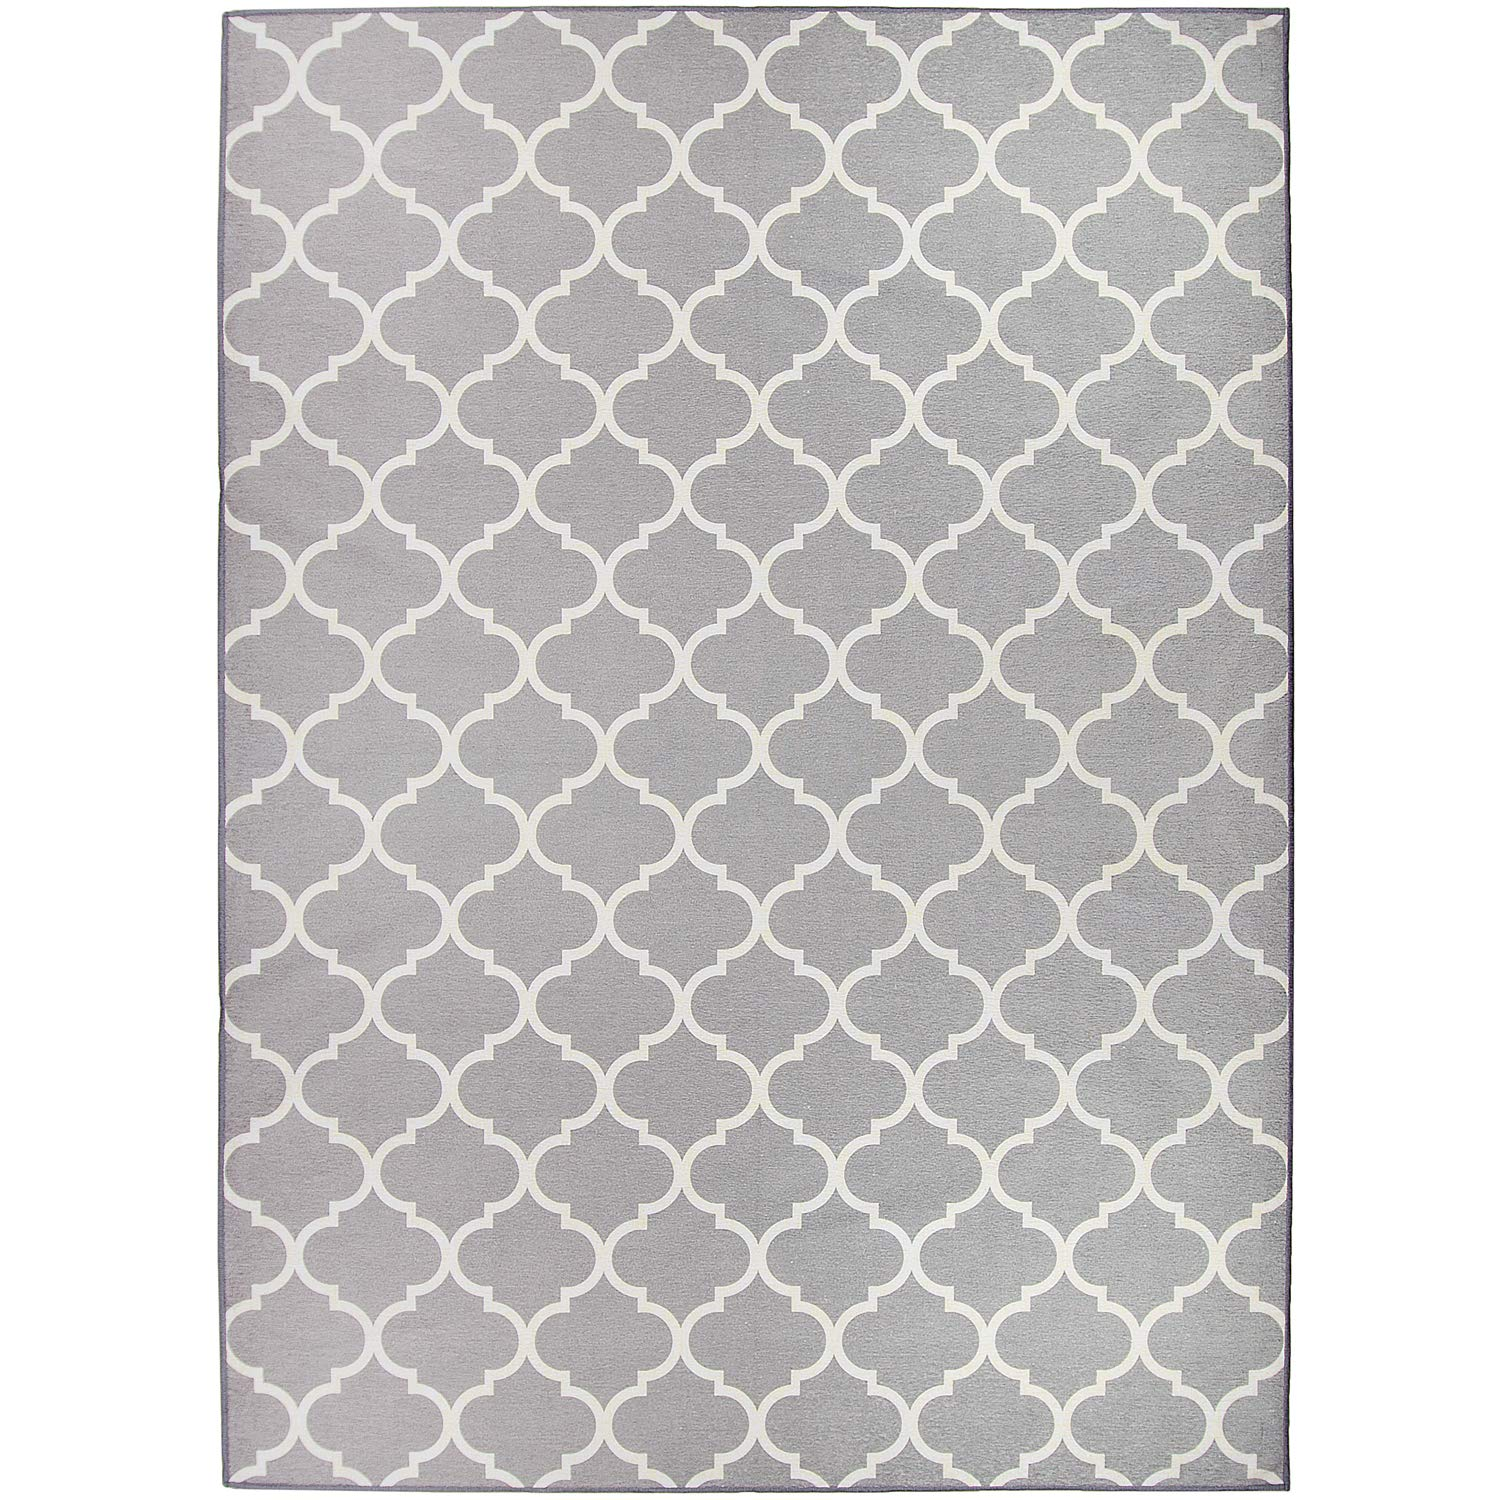 RUGGABLE Moroccan Trellis Light Grey Washable Indoor/Outdoor Stain Resistant 5'x7' (60''x84'') Area Rug 2pc Set (Cover and Pad)